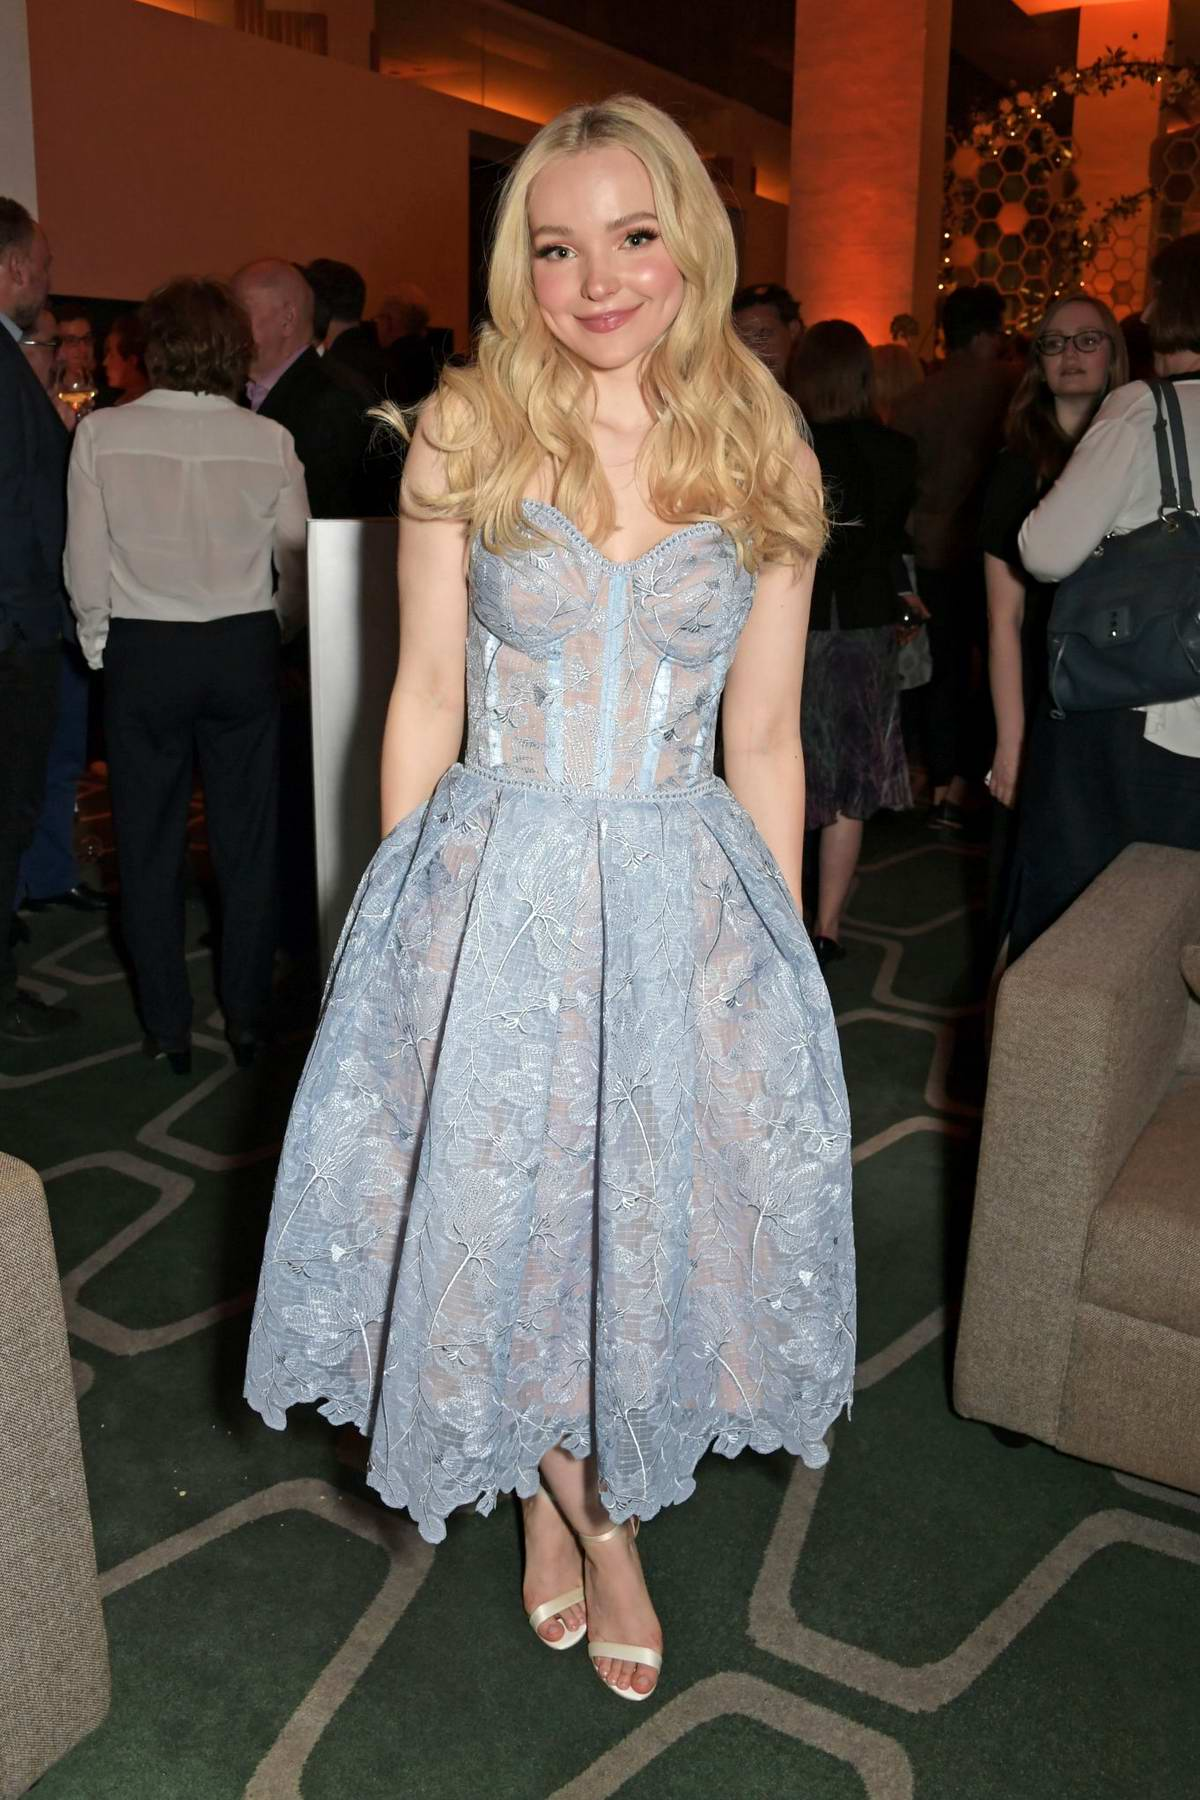 Dove Cameron attends the press night after party for 'The Light In The Piazza' at Skylon in London, UK